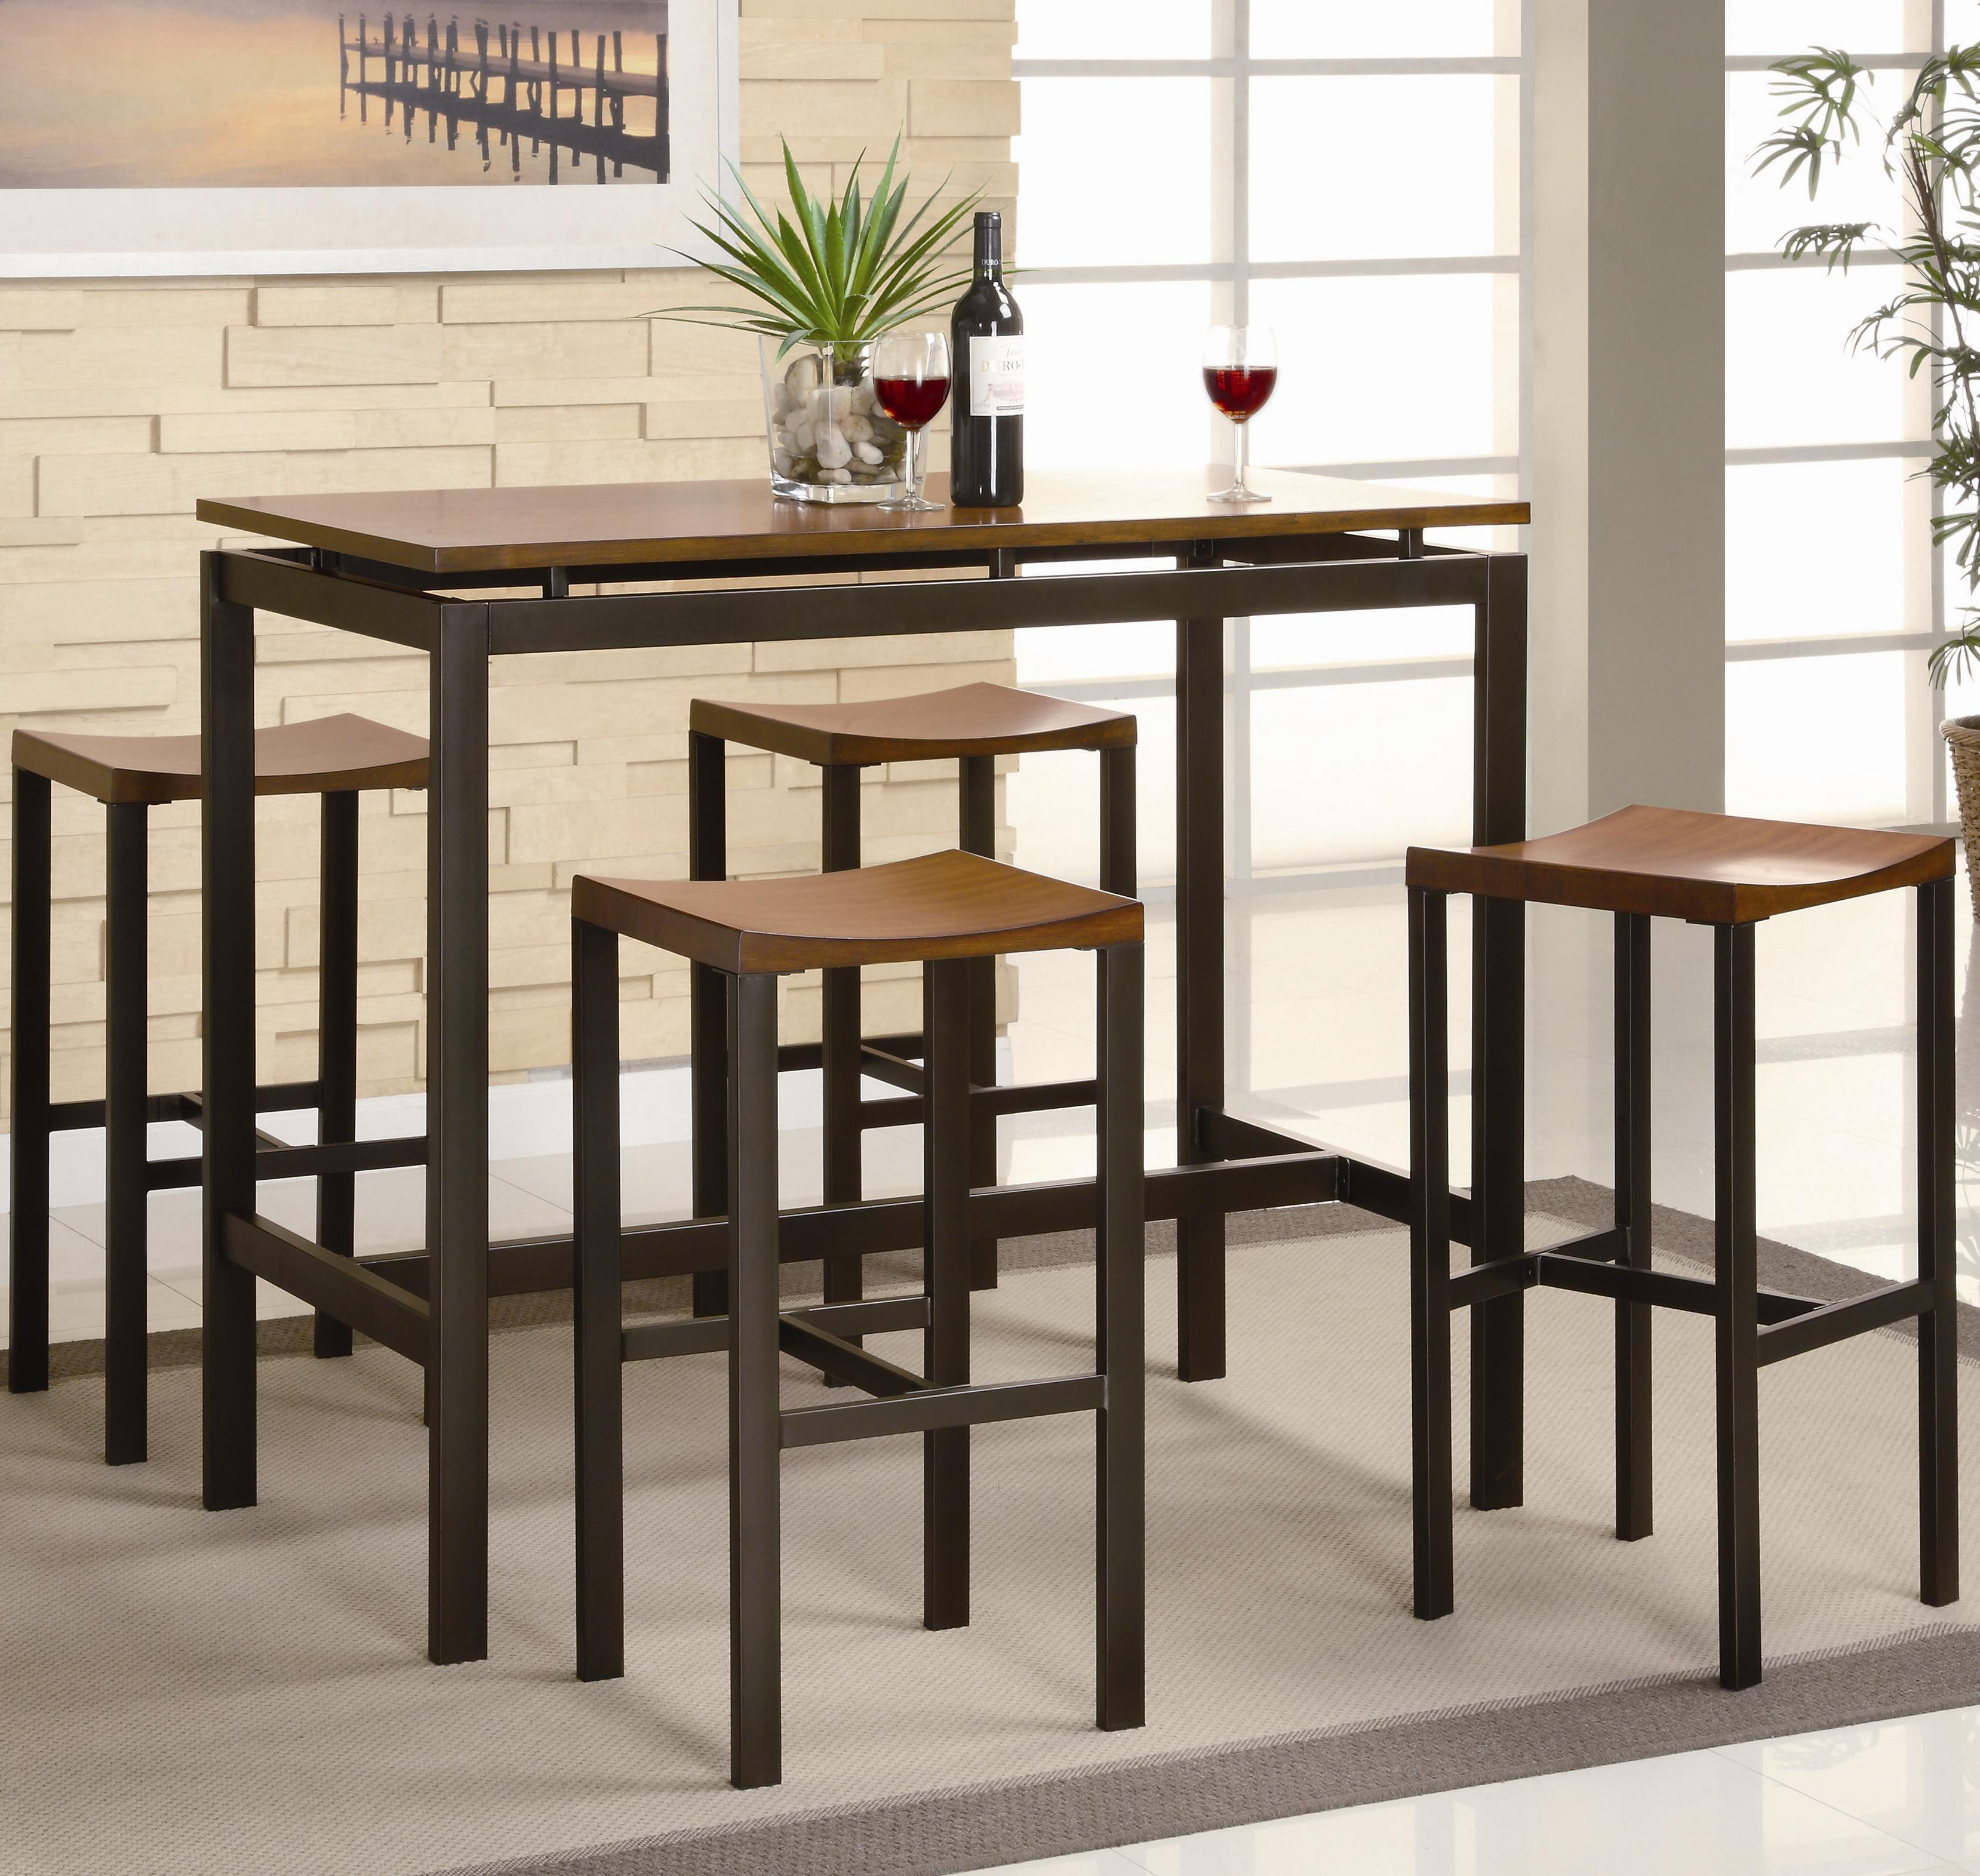 Coaster Atlus Counter Height Contemporary Black Metal Table With Warm Oak  Top And 4 Stools   Coaster Fine Furniture